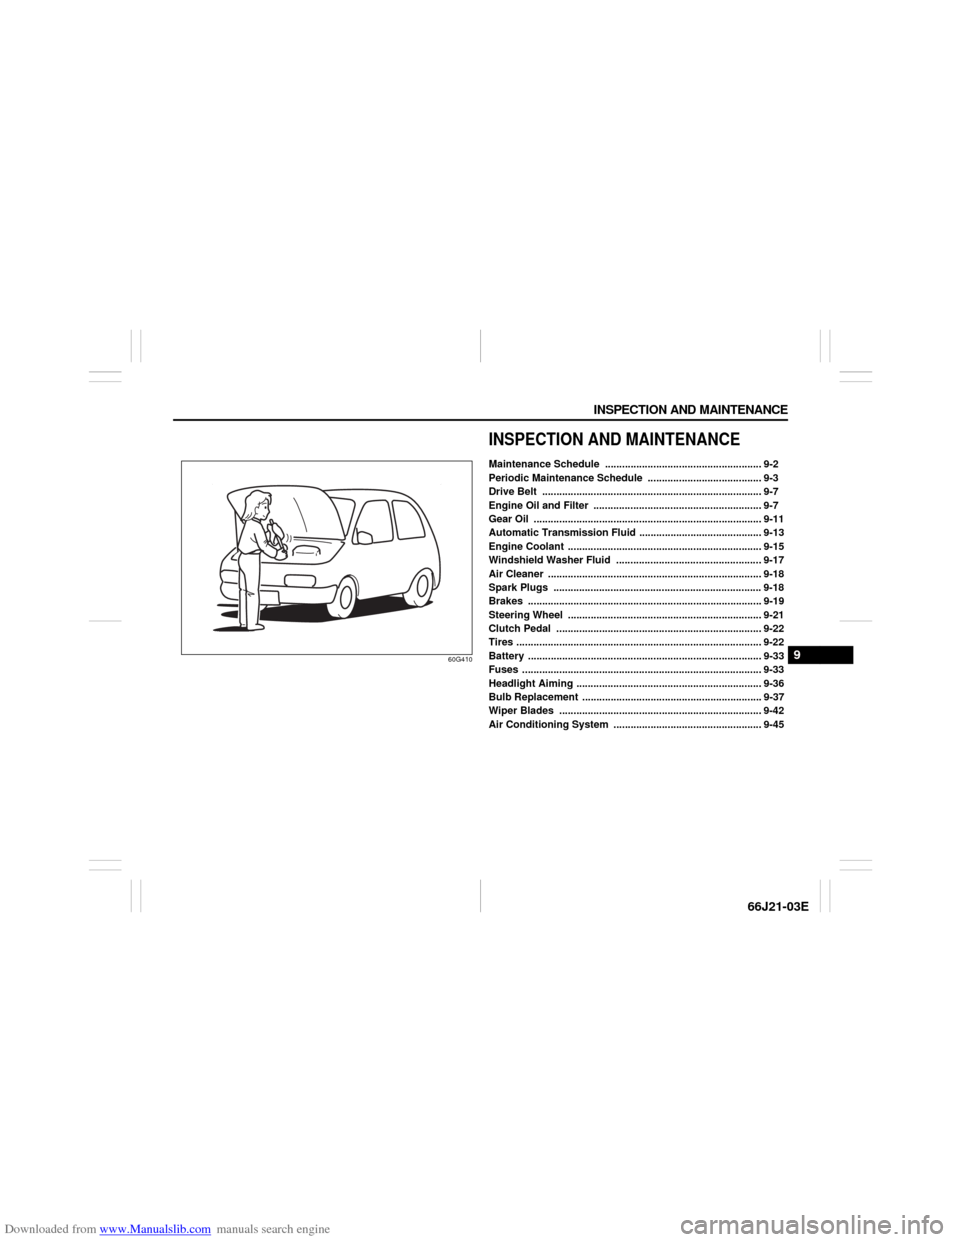 SUZUKI GRAND VITARA 2007 3.G Owners Manual